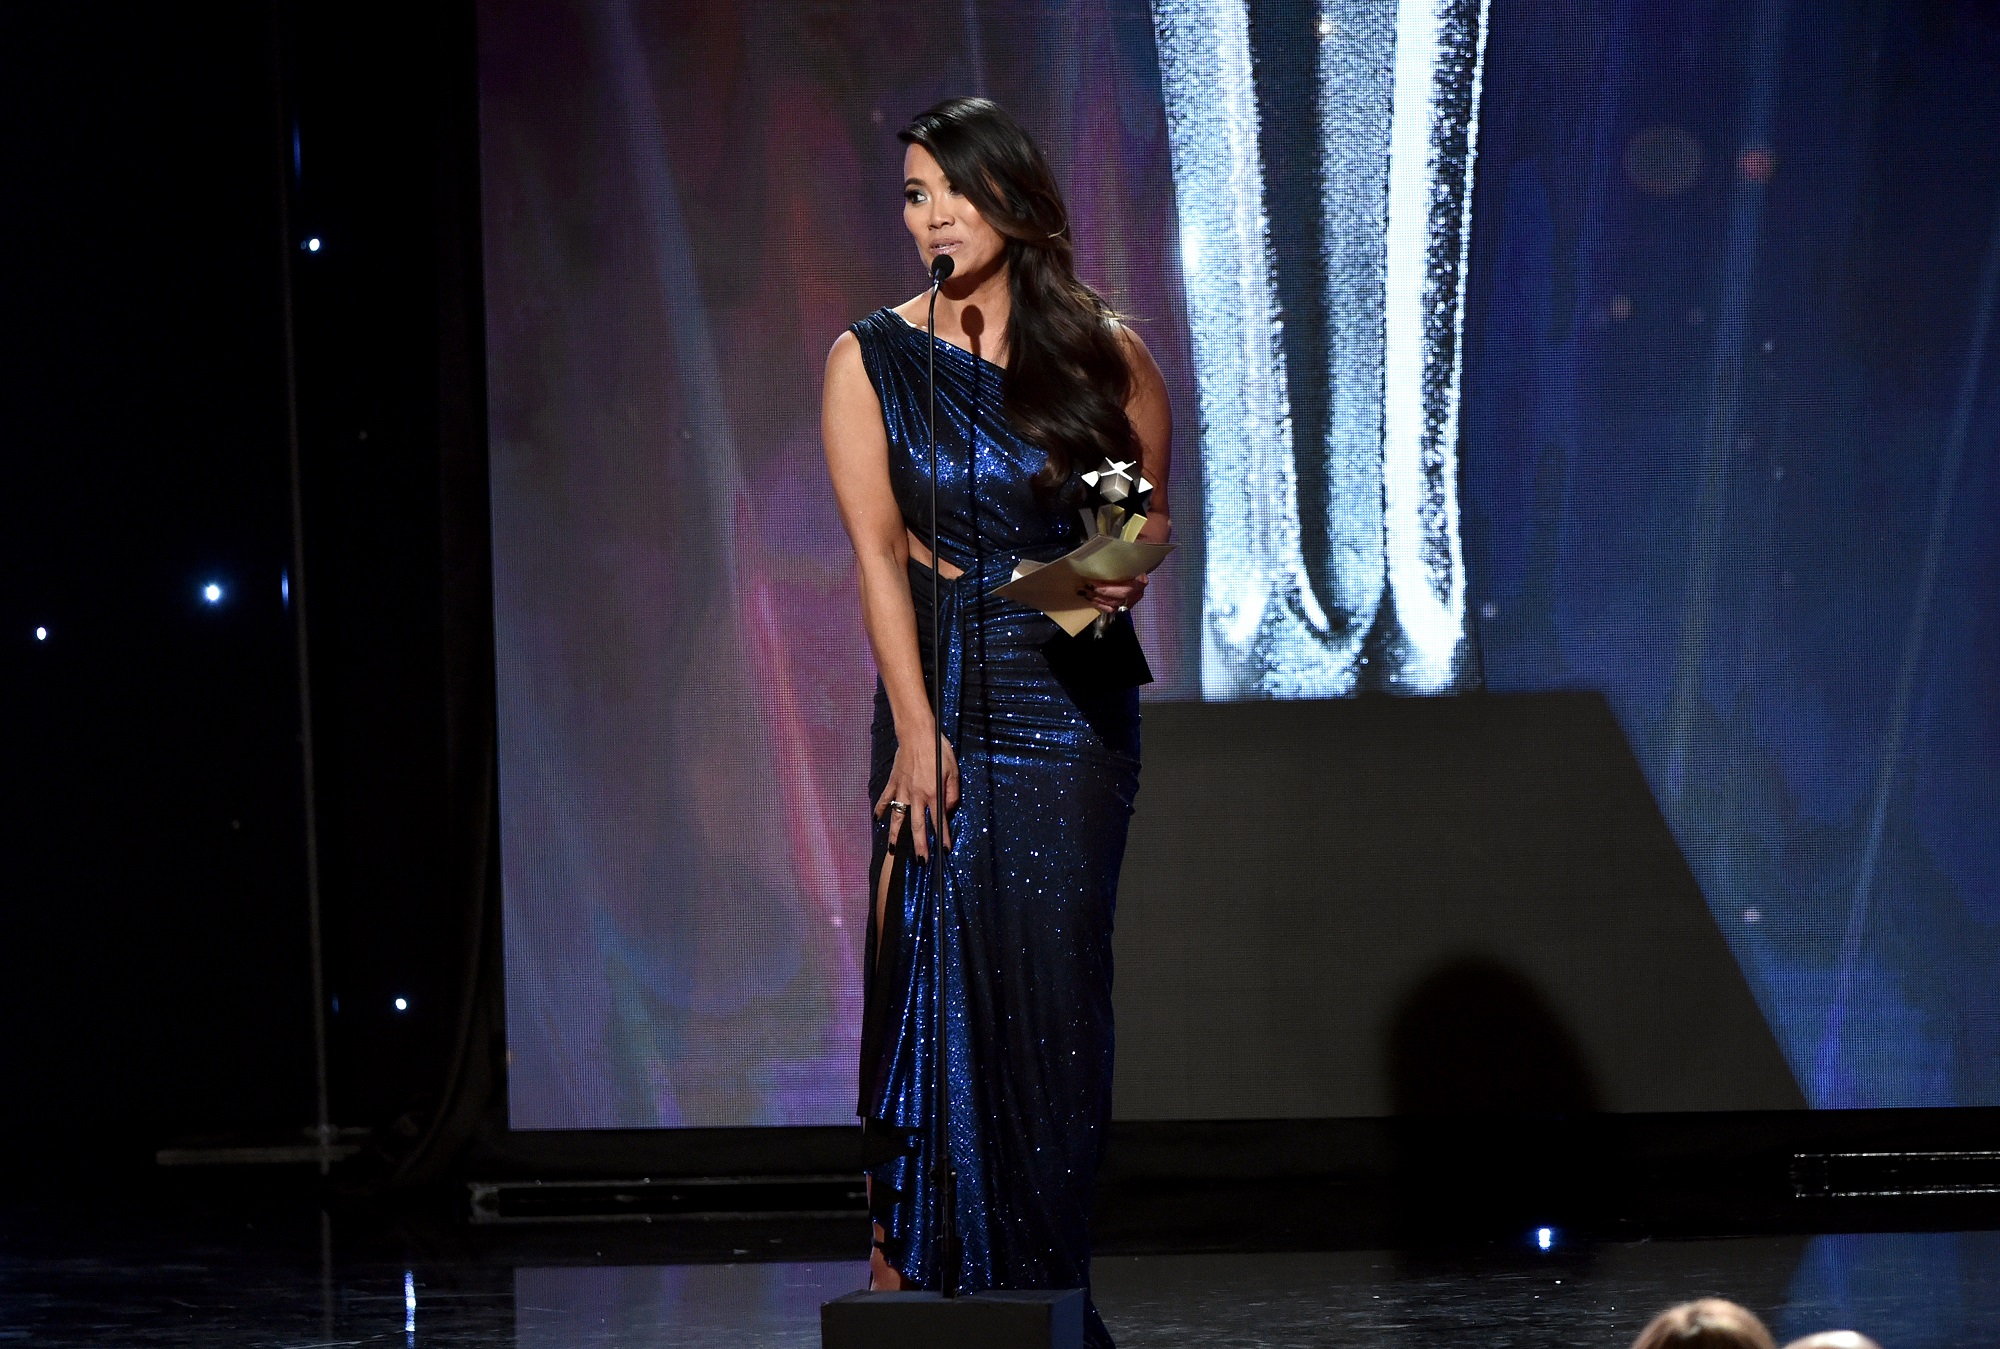 Dr. Sandra Lee aka Dr. Pimple Popper accepts Female Star of the Year award onstage during the Critics' Choice Real TV Awards at The Beverly Hilton Hotel